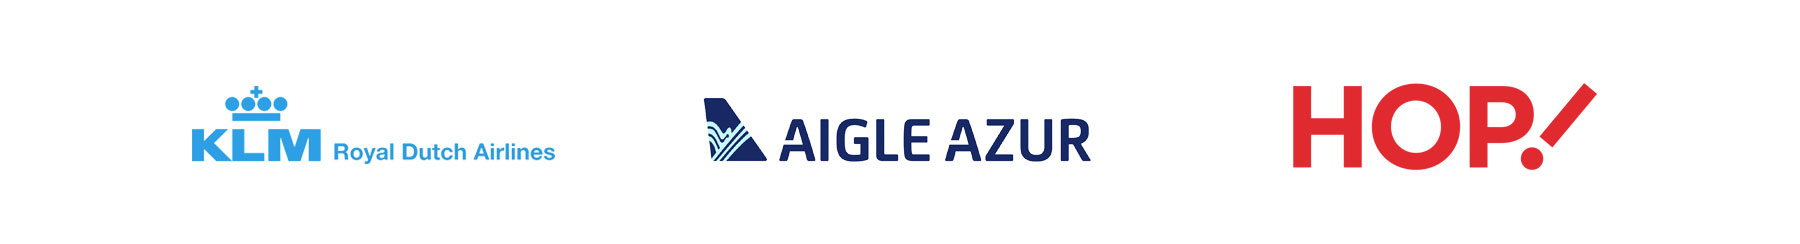 Commercial Partners KLM Royal Dutch Airlines, Aigle Azur and HOP